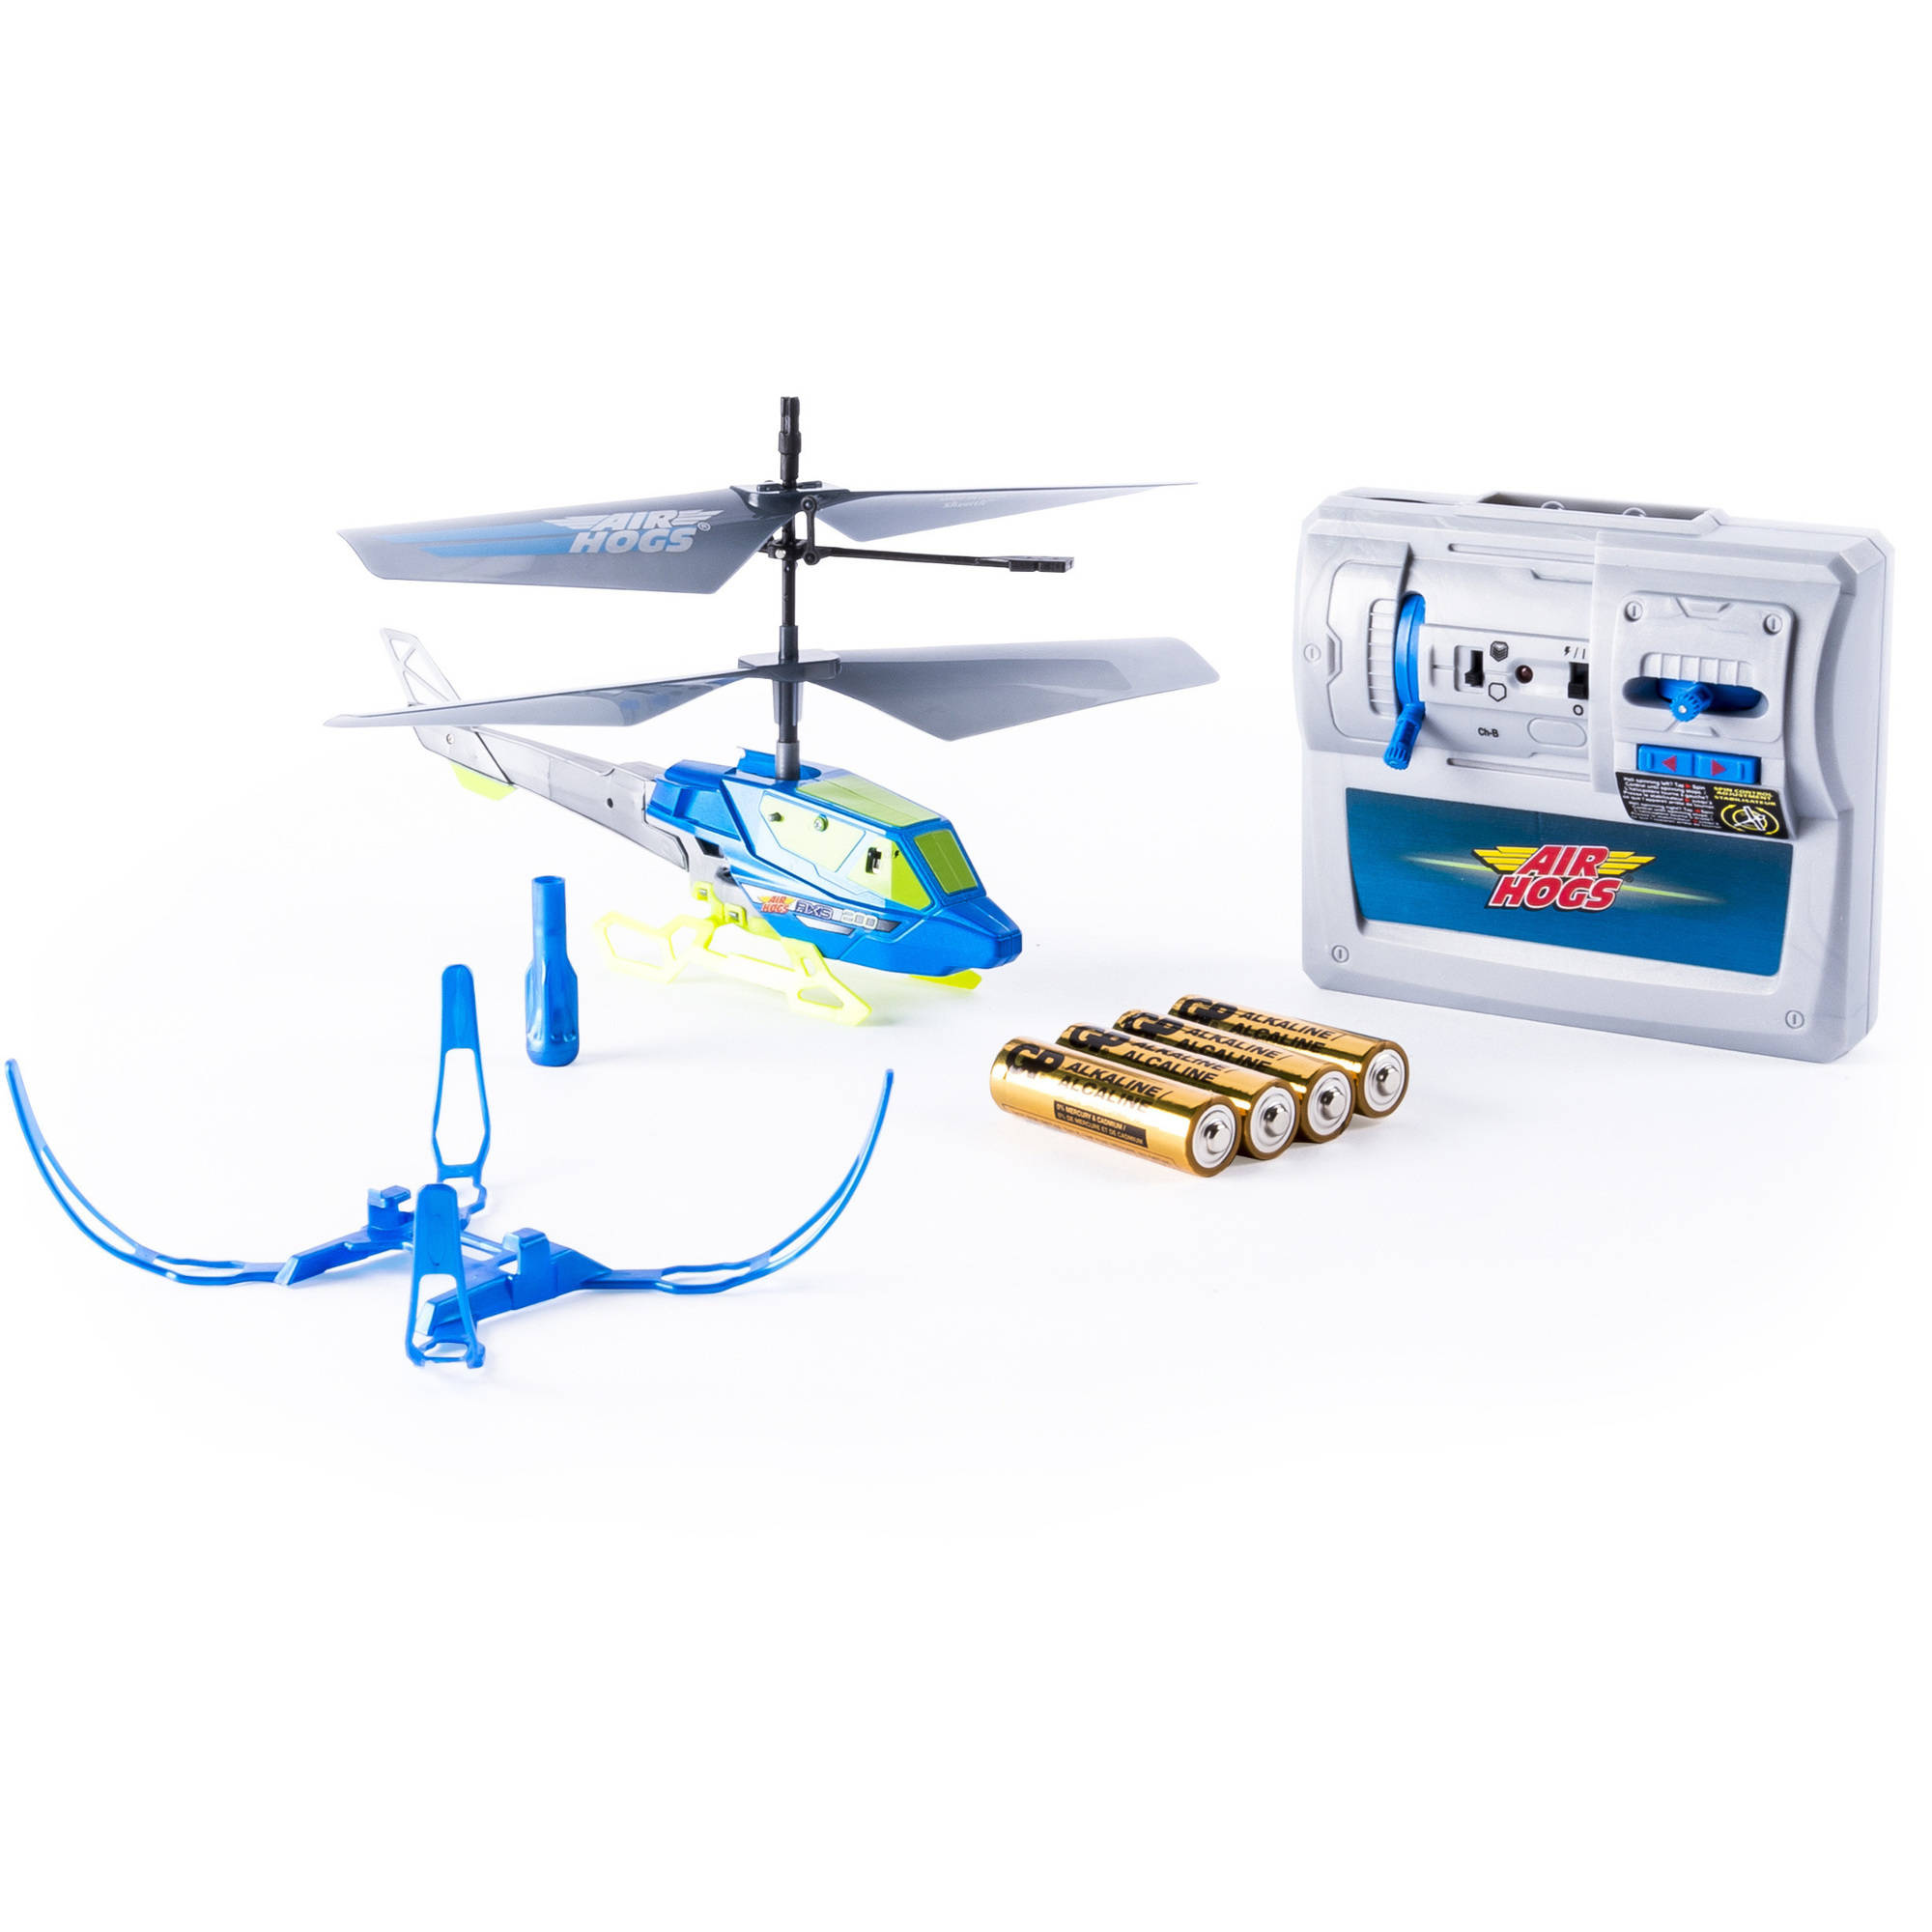 Air Hogs Axis 200 RC Helicopter with Batteries, Blue